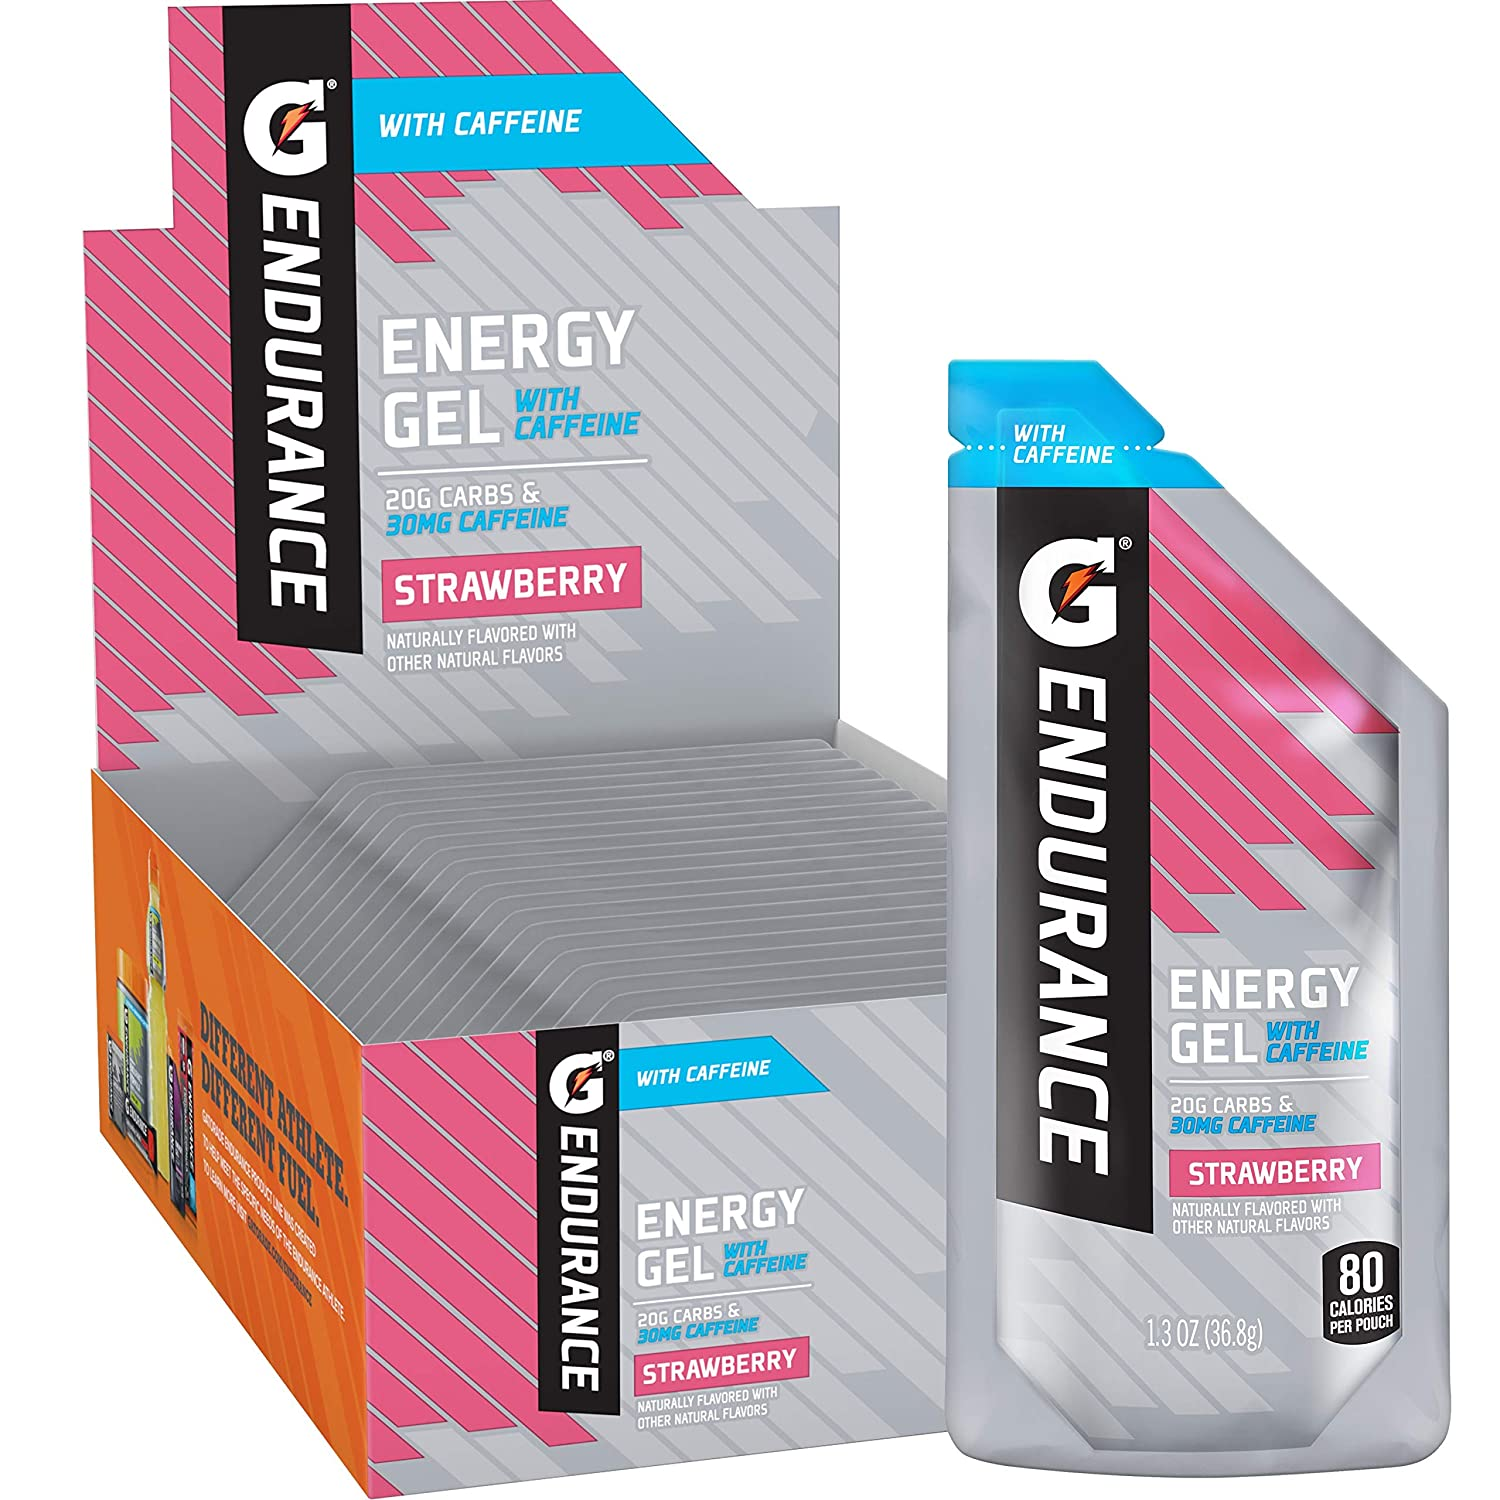 Gatorade Endurance EnergyGelwith Special Don't miss the campaign Campaign Caffeine 1.3oz Strawberry P